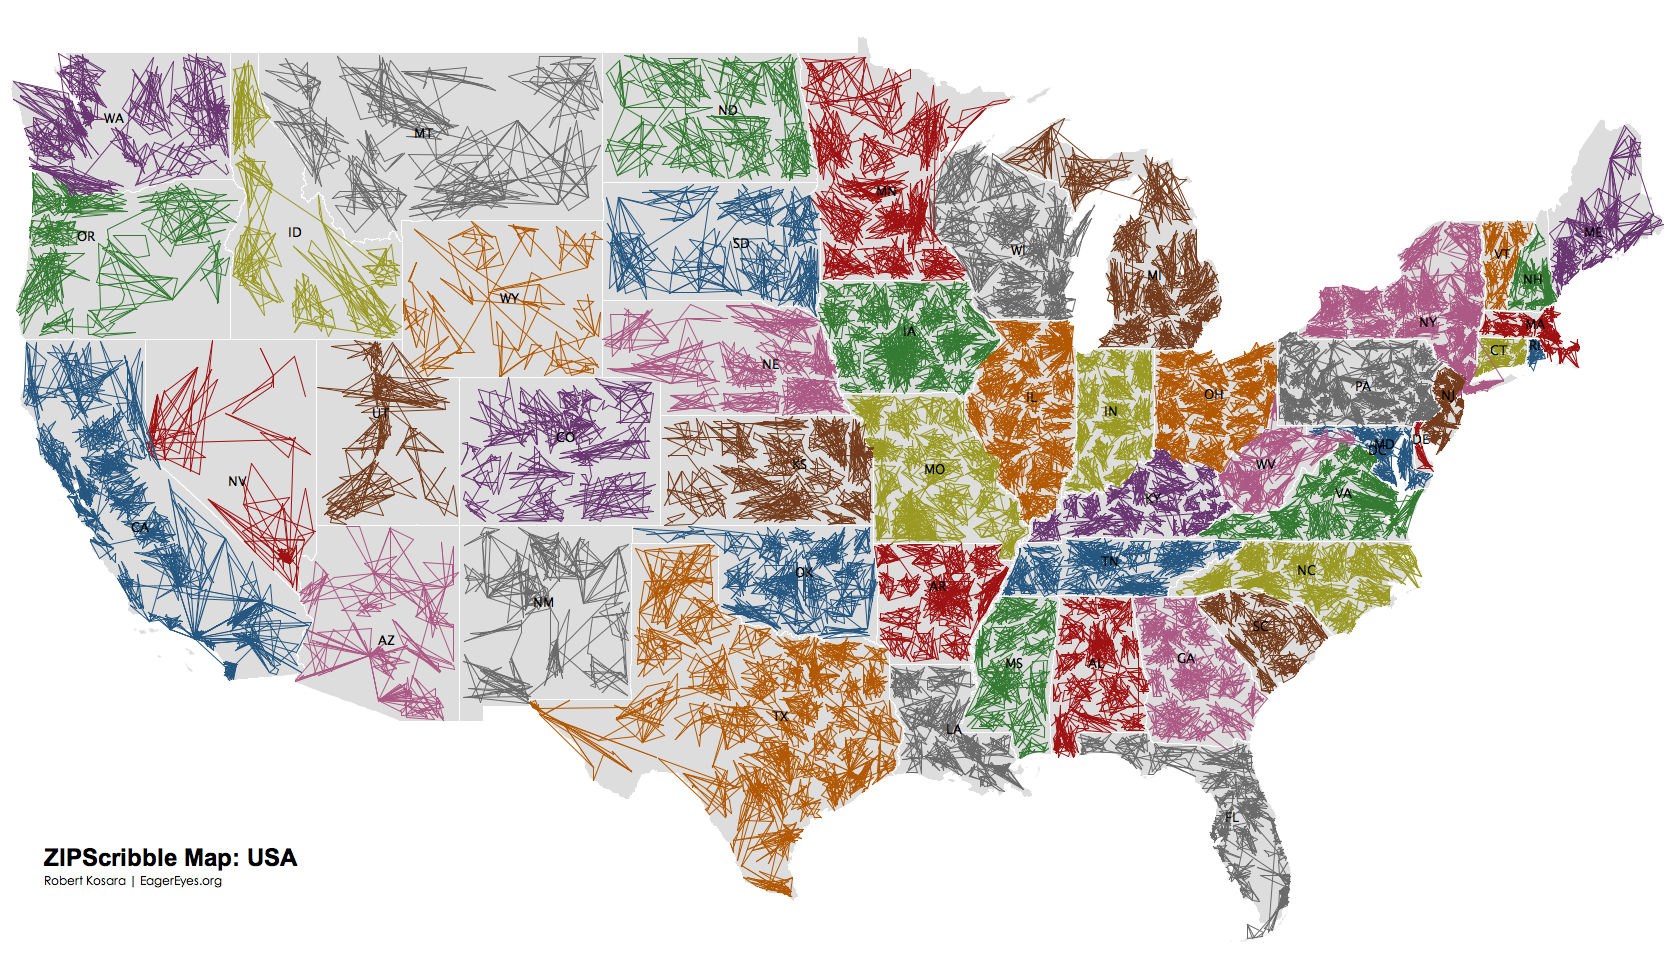 The US ZIPScribble Map - Us zip code map pdf